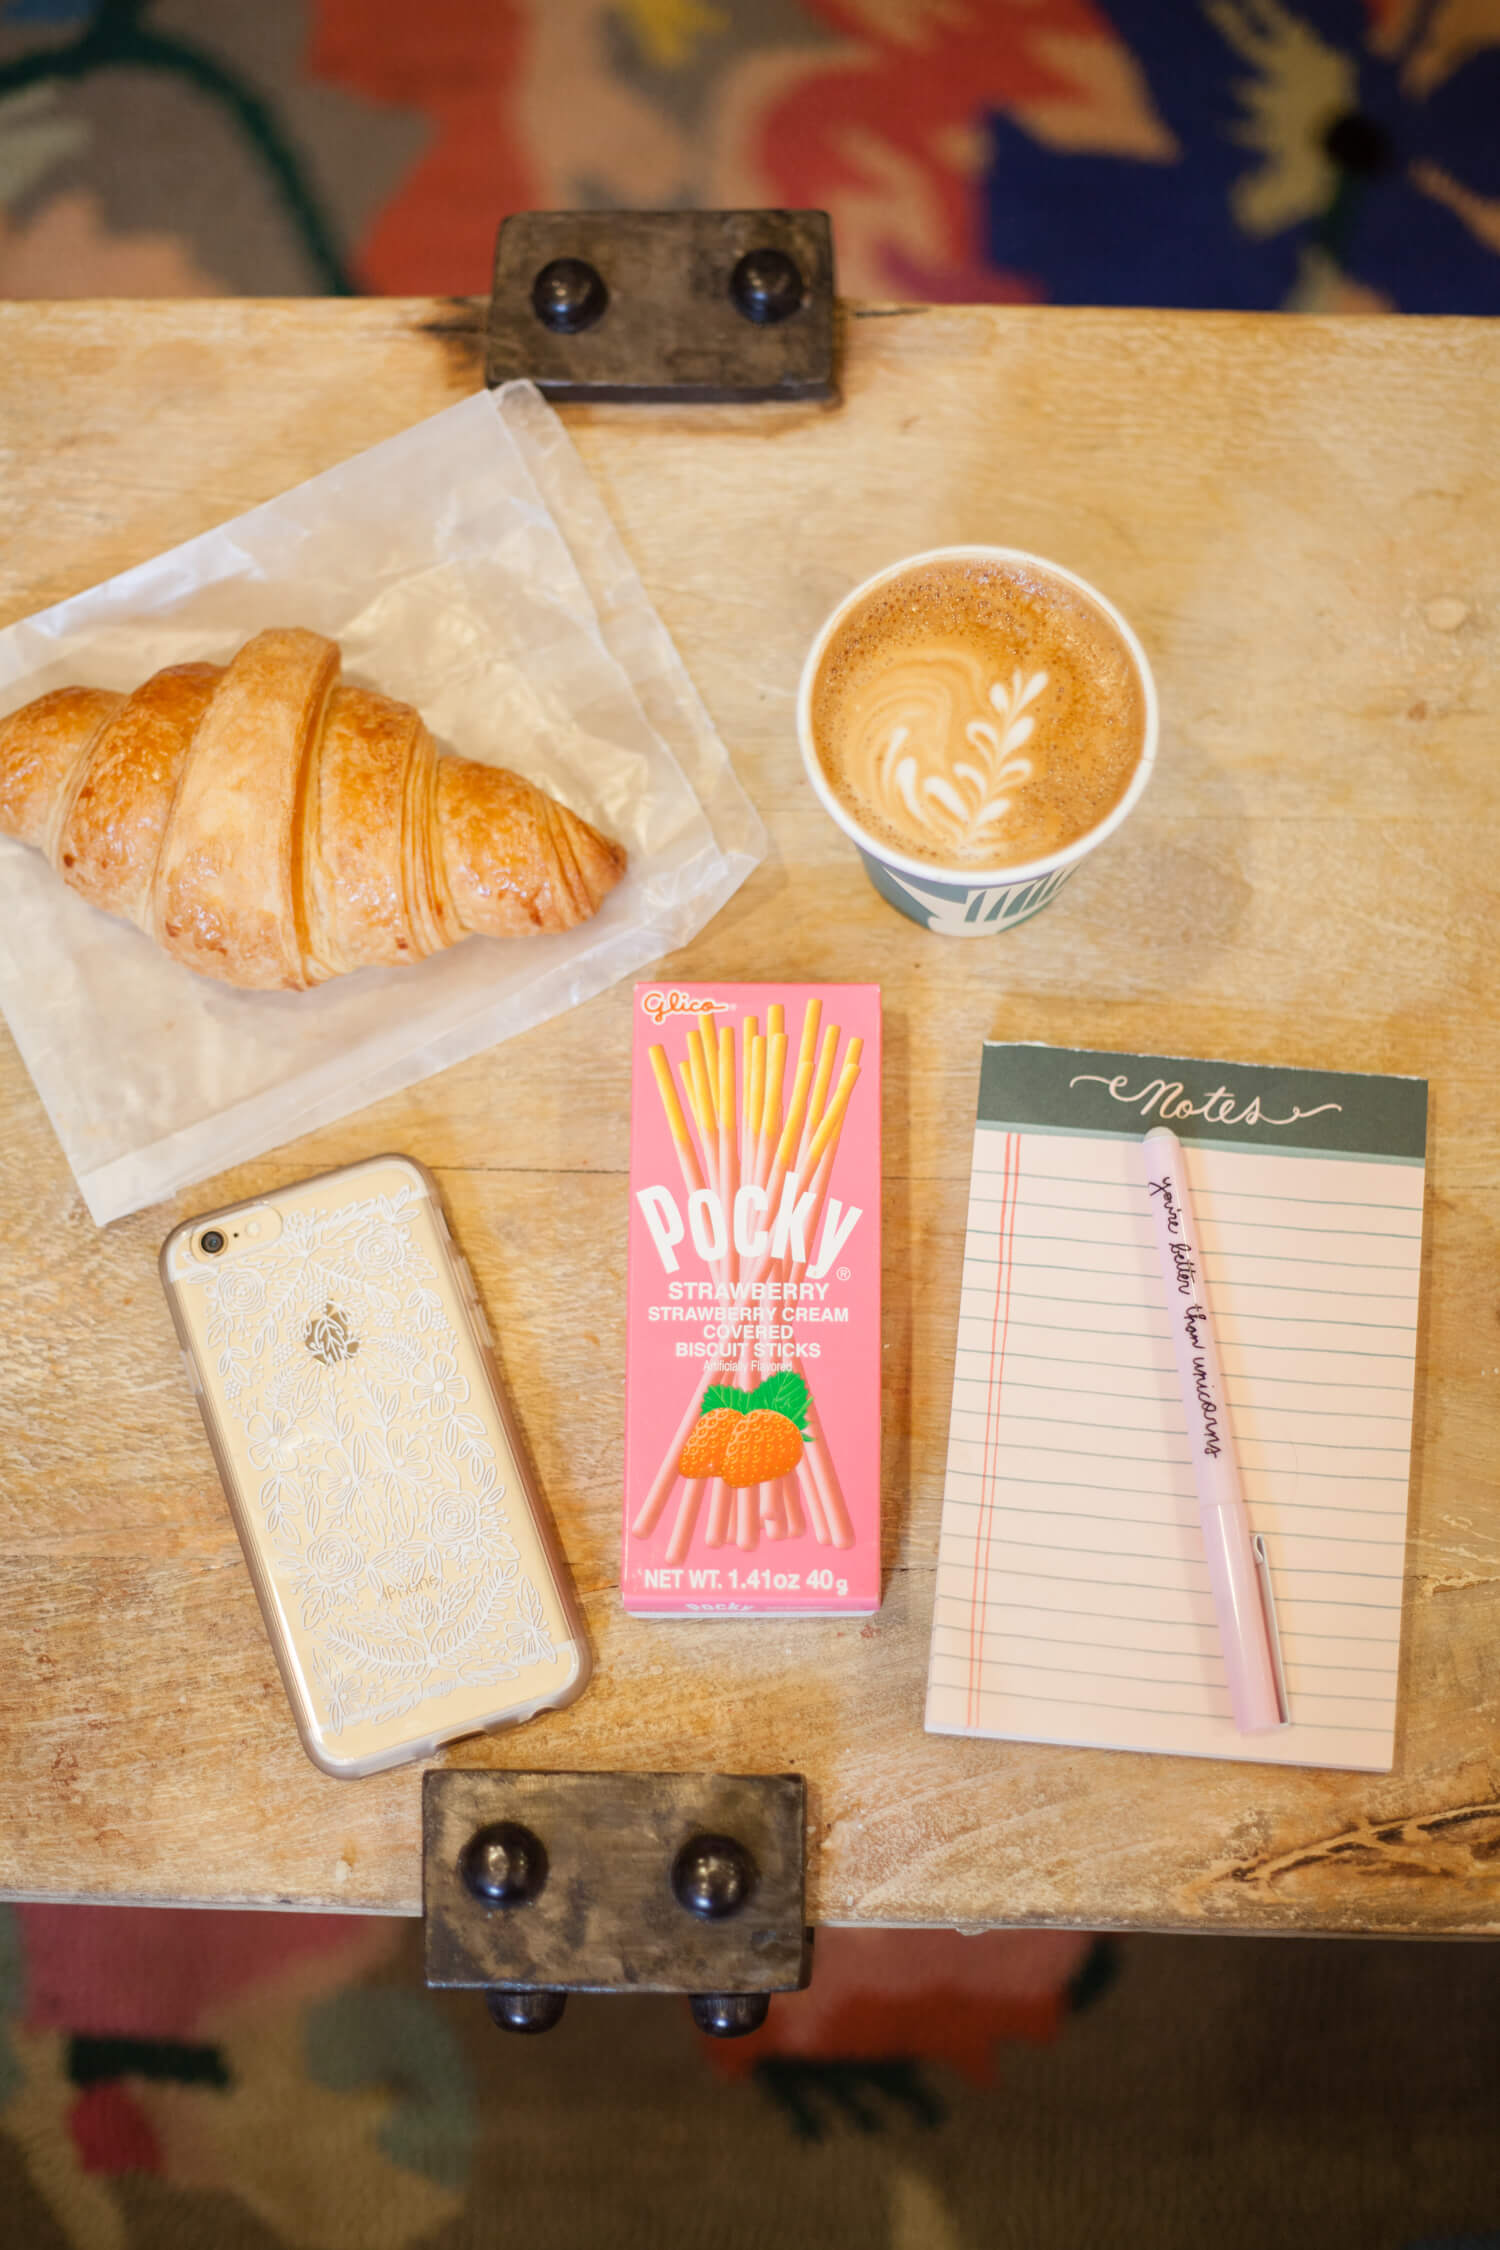 Coffee and Pocky Pairings - Strawberry and Latte